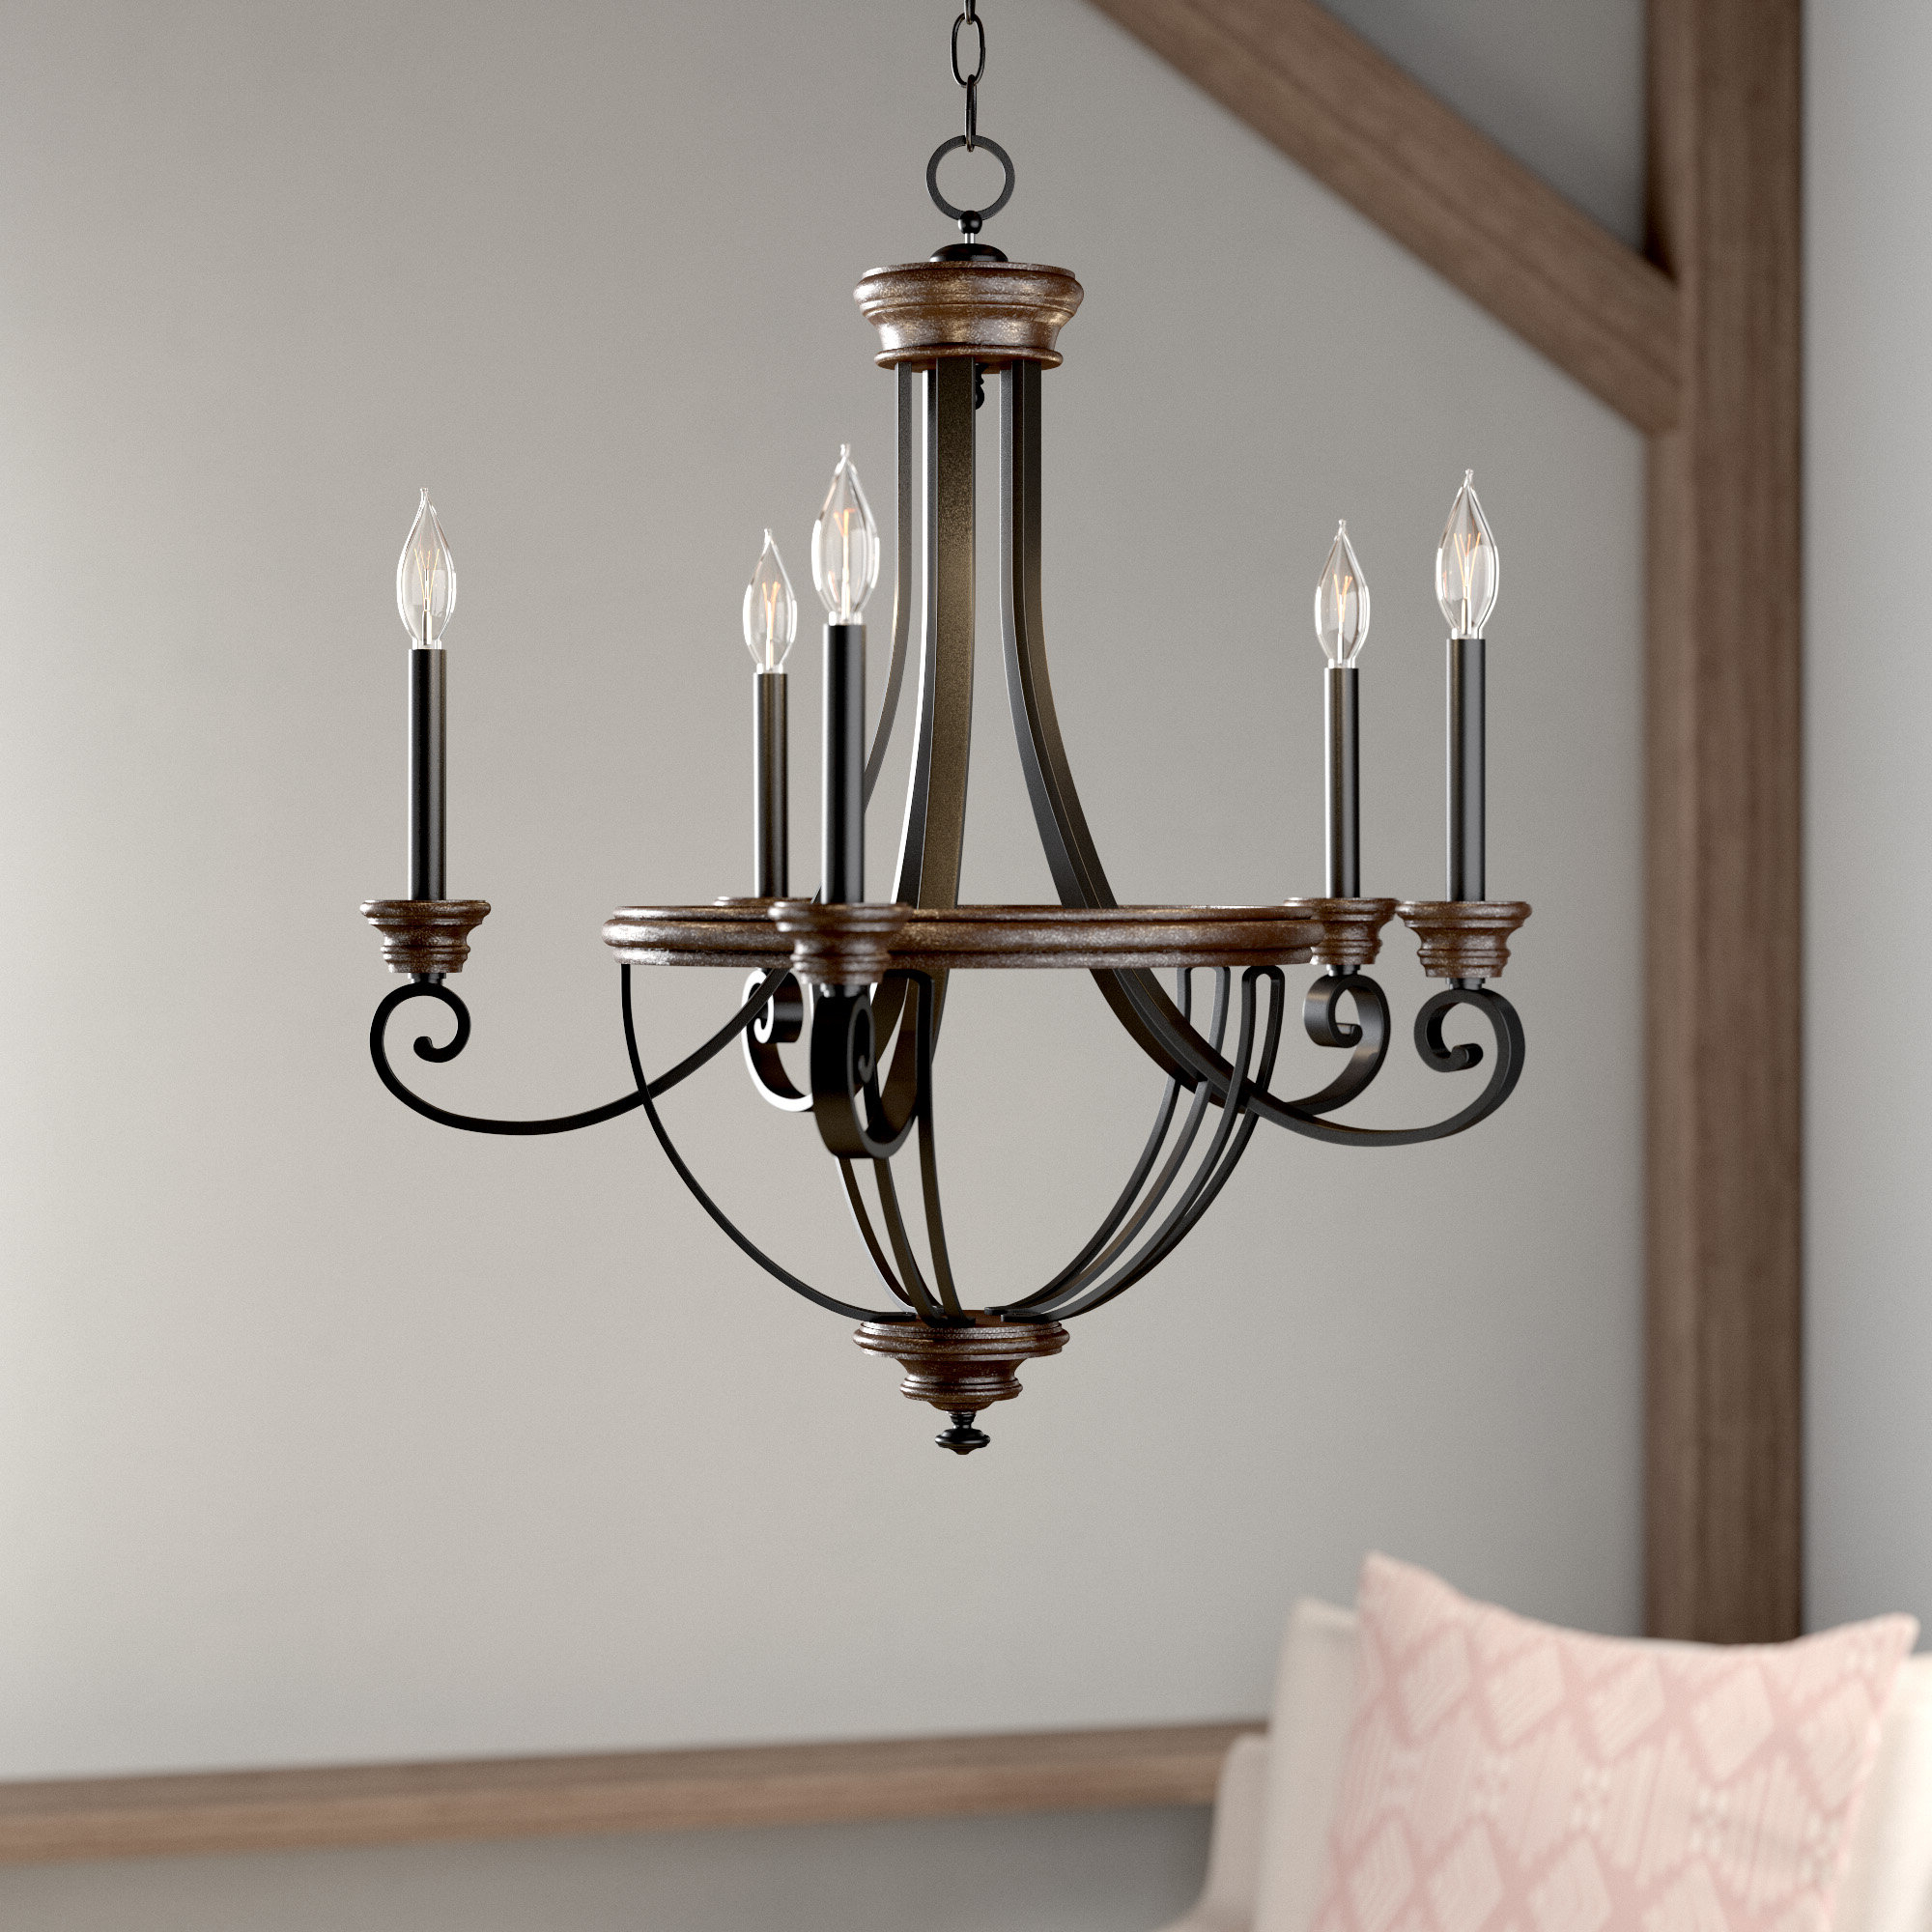 Phifer 6 Light Empire Chandeliers With Regard To Most Popular Nanteuil 5 Light Empire Chandelier (Gallery 12 of 20)